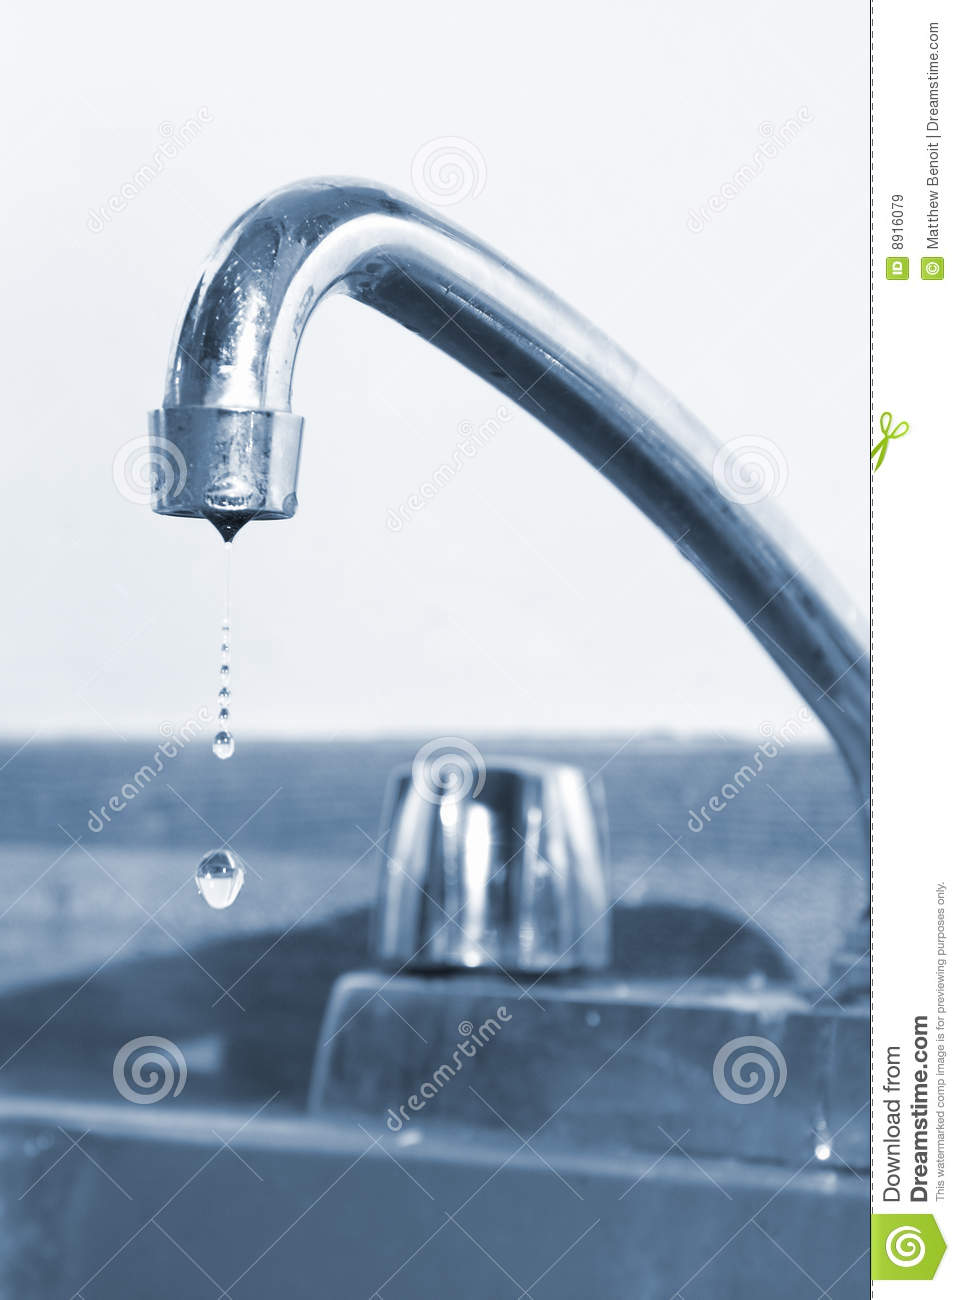 dripping faucet royalty free stock images image 8916079